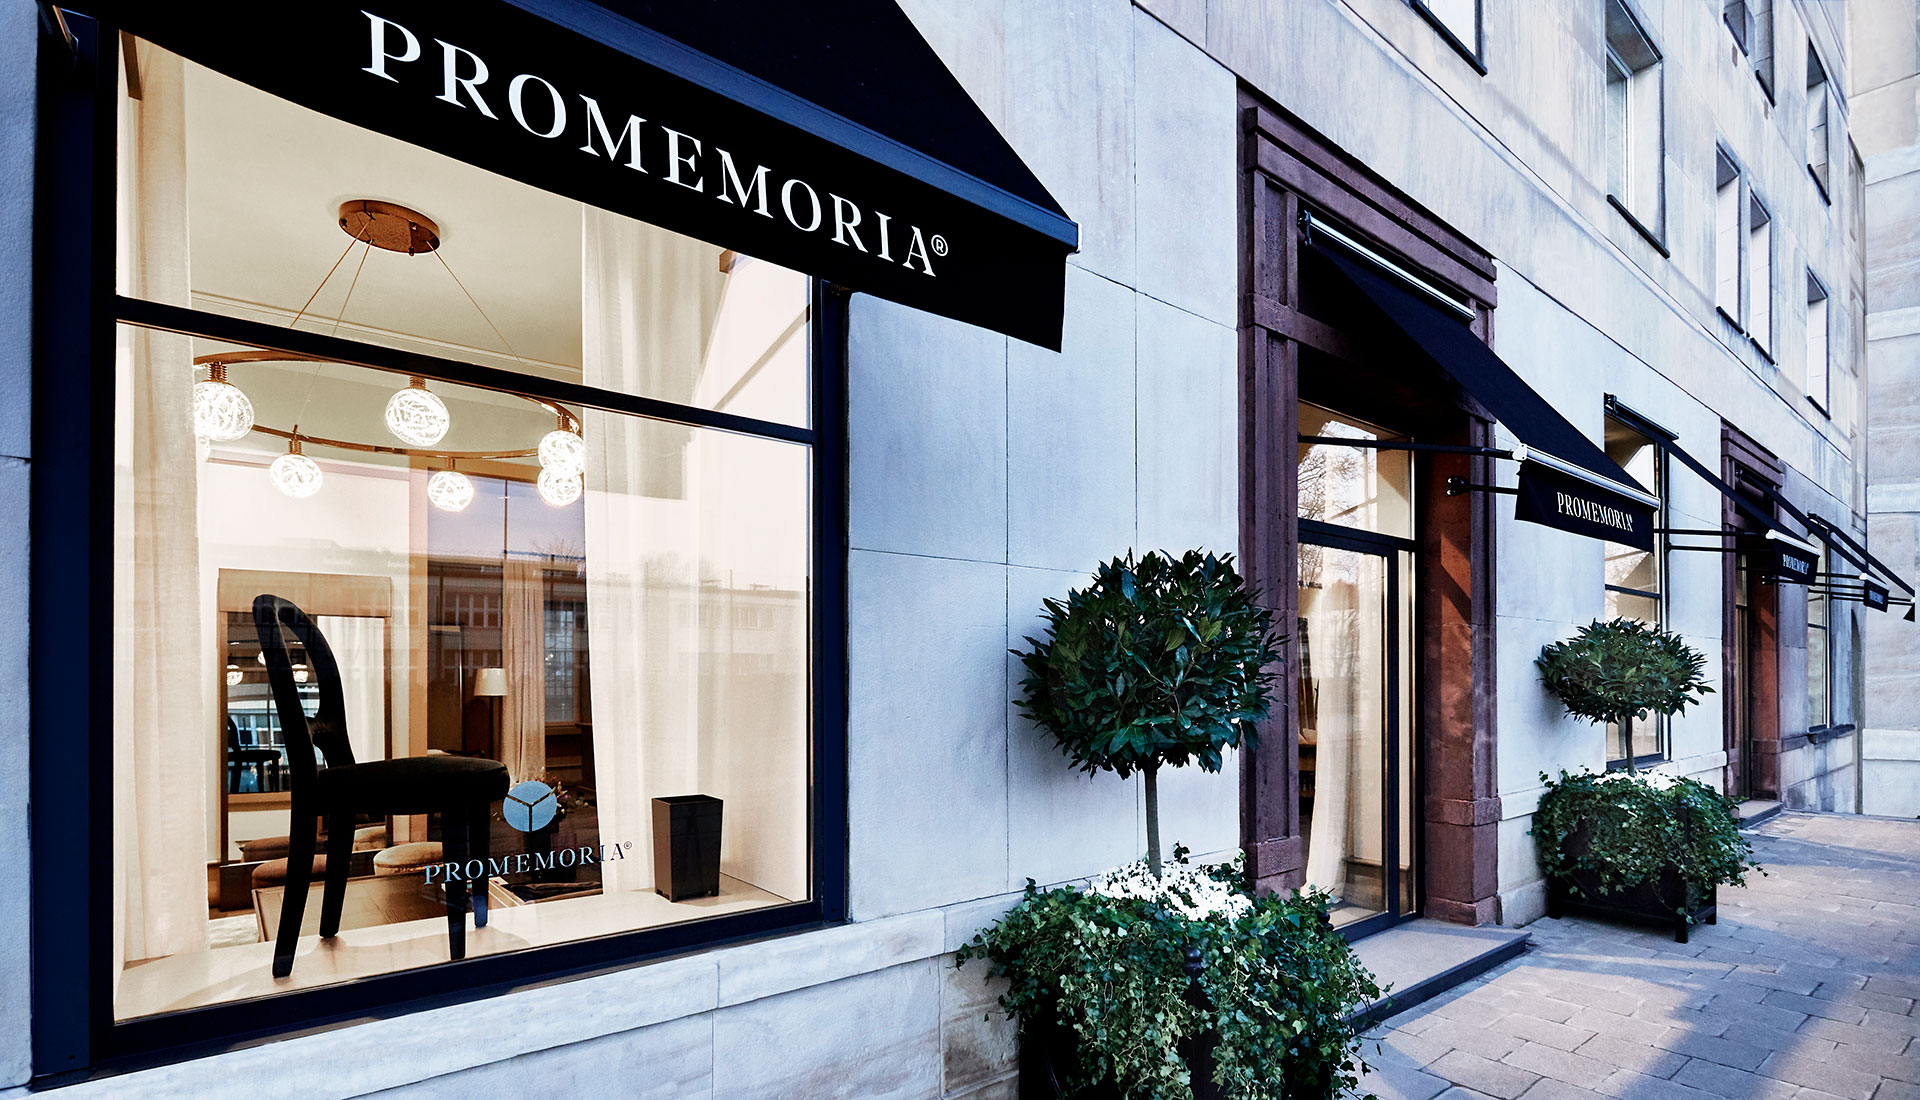 En 2019, Promemoria inaugure son nouveau showroom à Varsovie